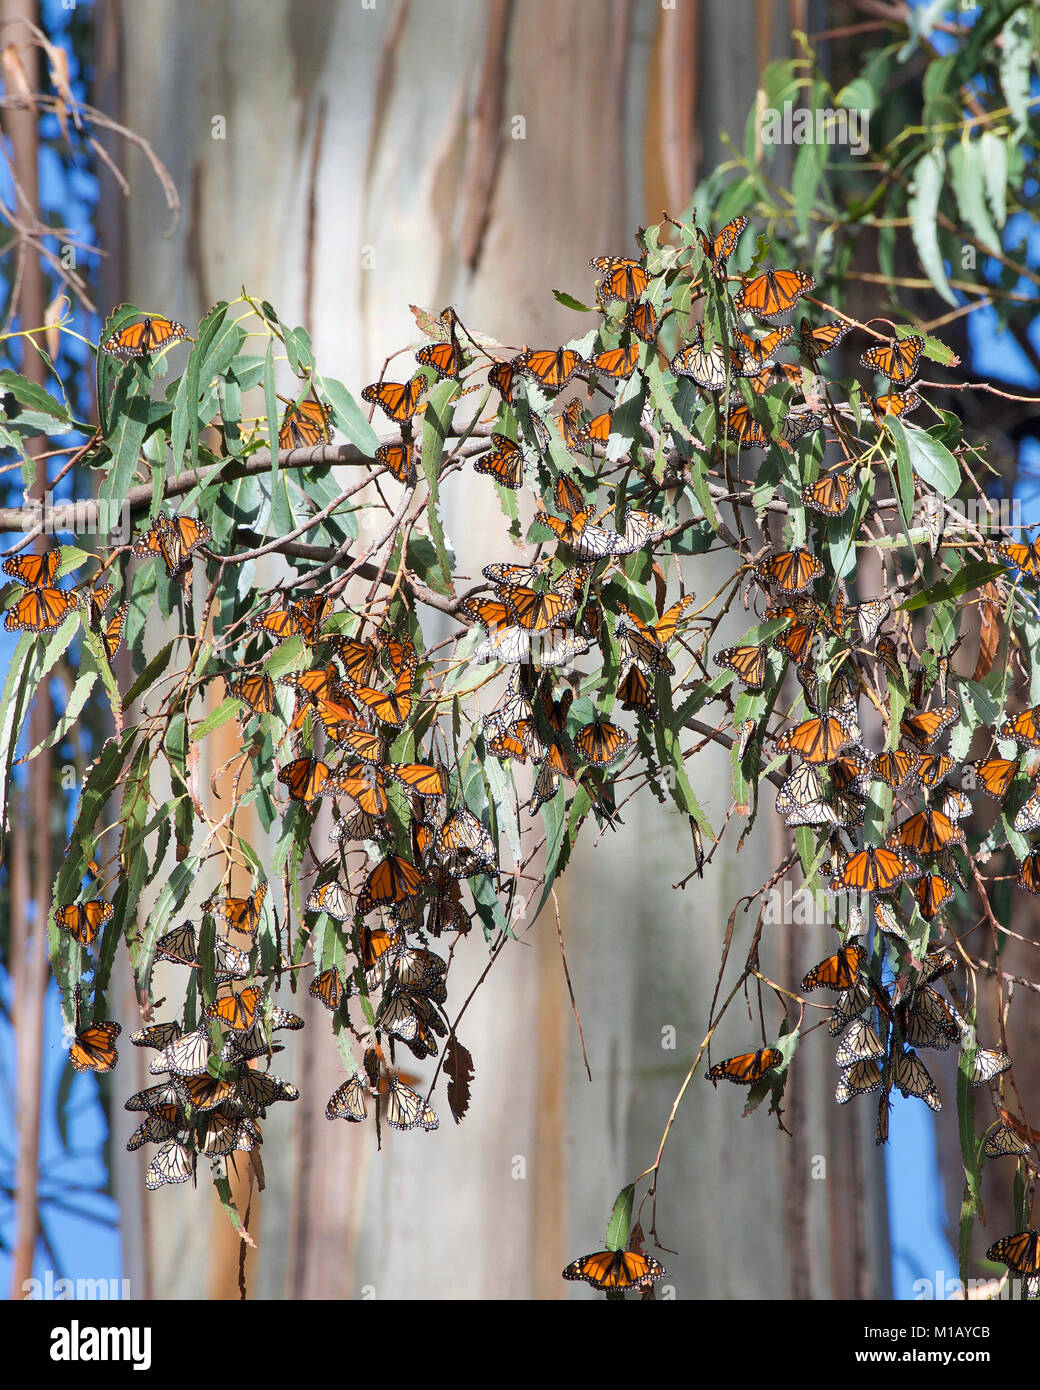 Many Monarch Butterflies clustered in a Eucalyptus Tree, trunk of the tree in the background. The monarch butterfly - Stock Image